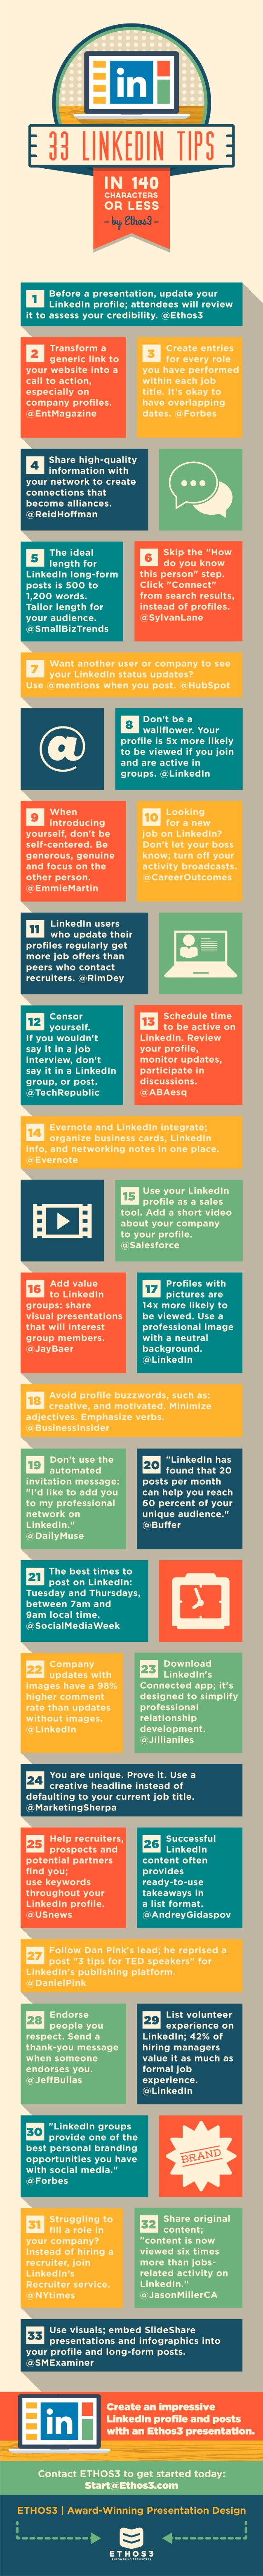 tips-for-linkedin